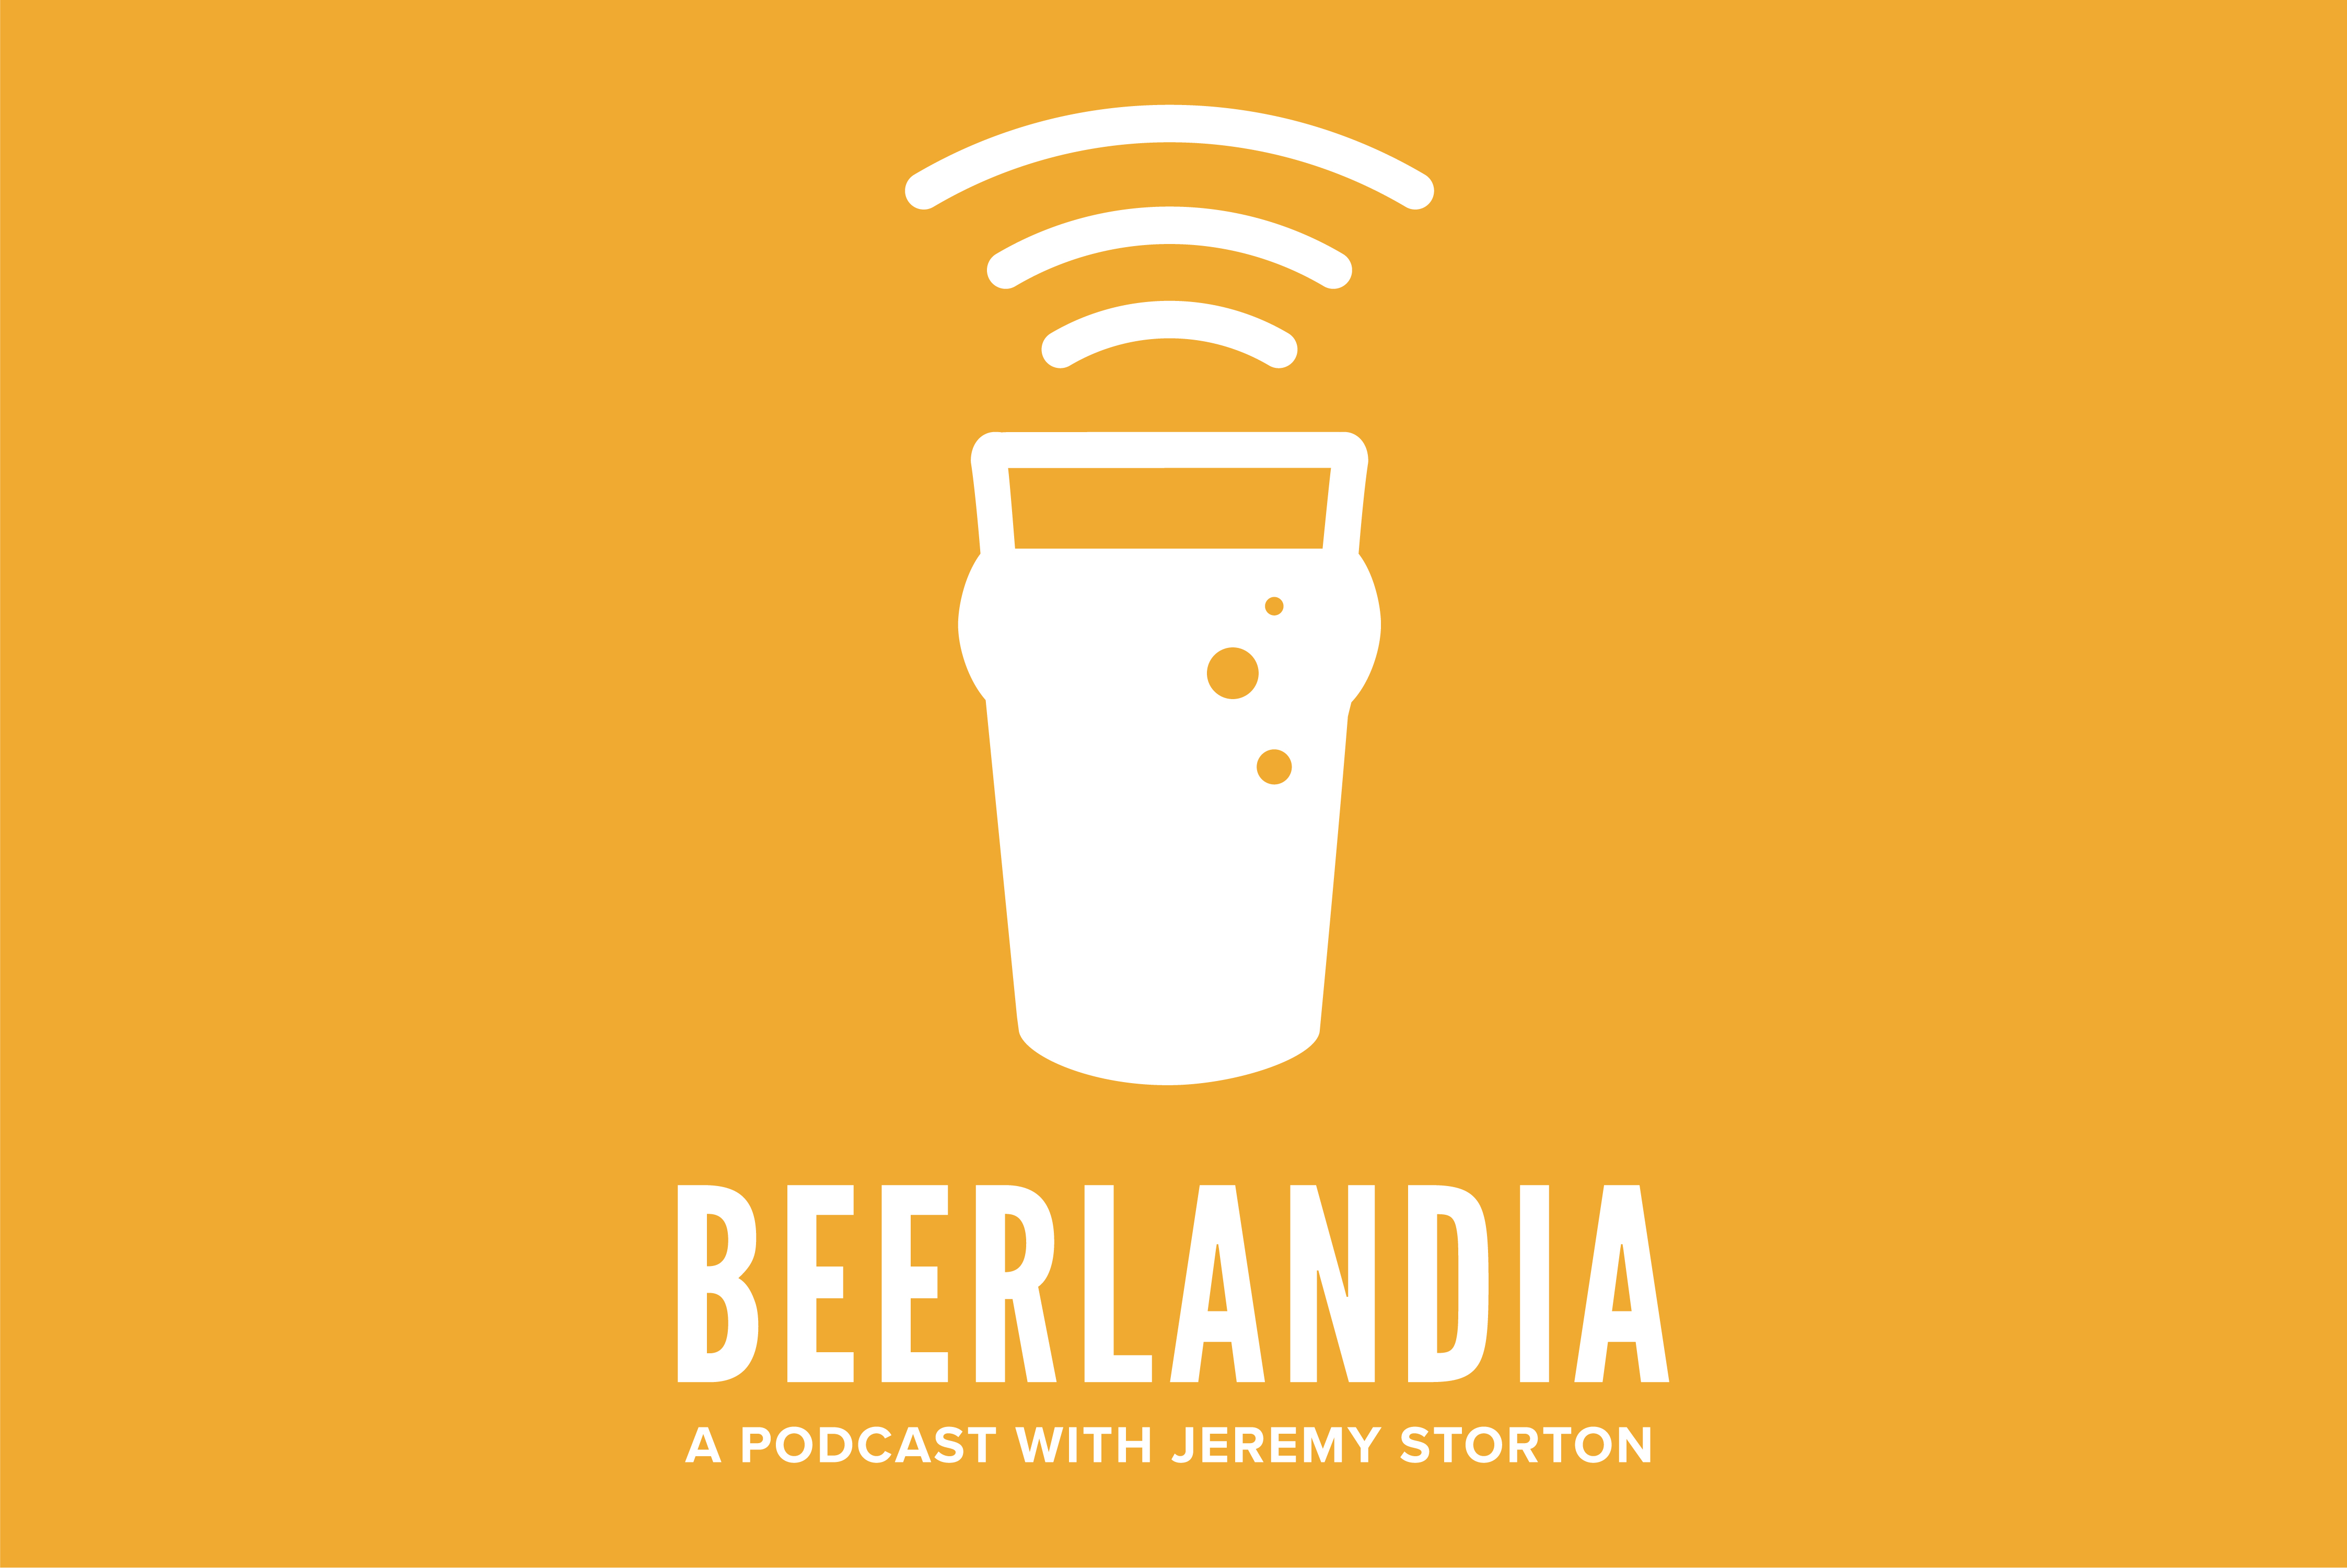 Beerlandia Podcast 3: Larry Sidor, Crux Fermentation Project